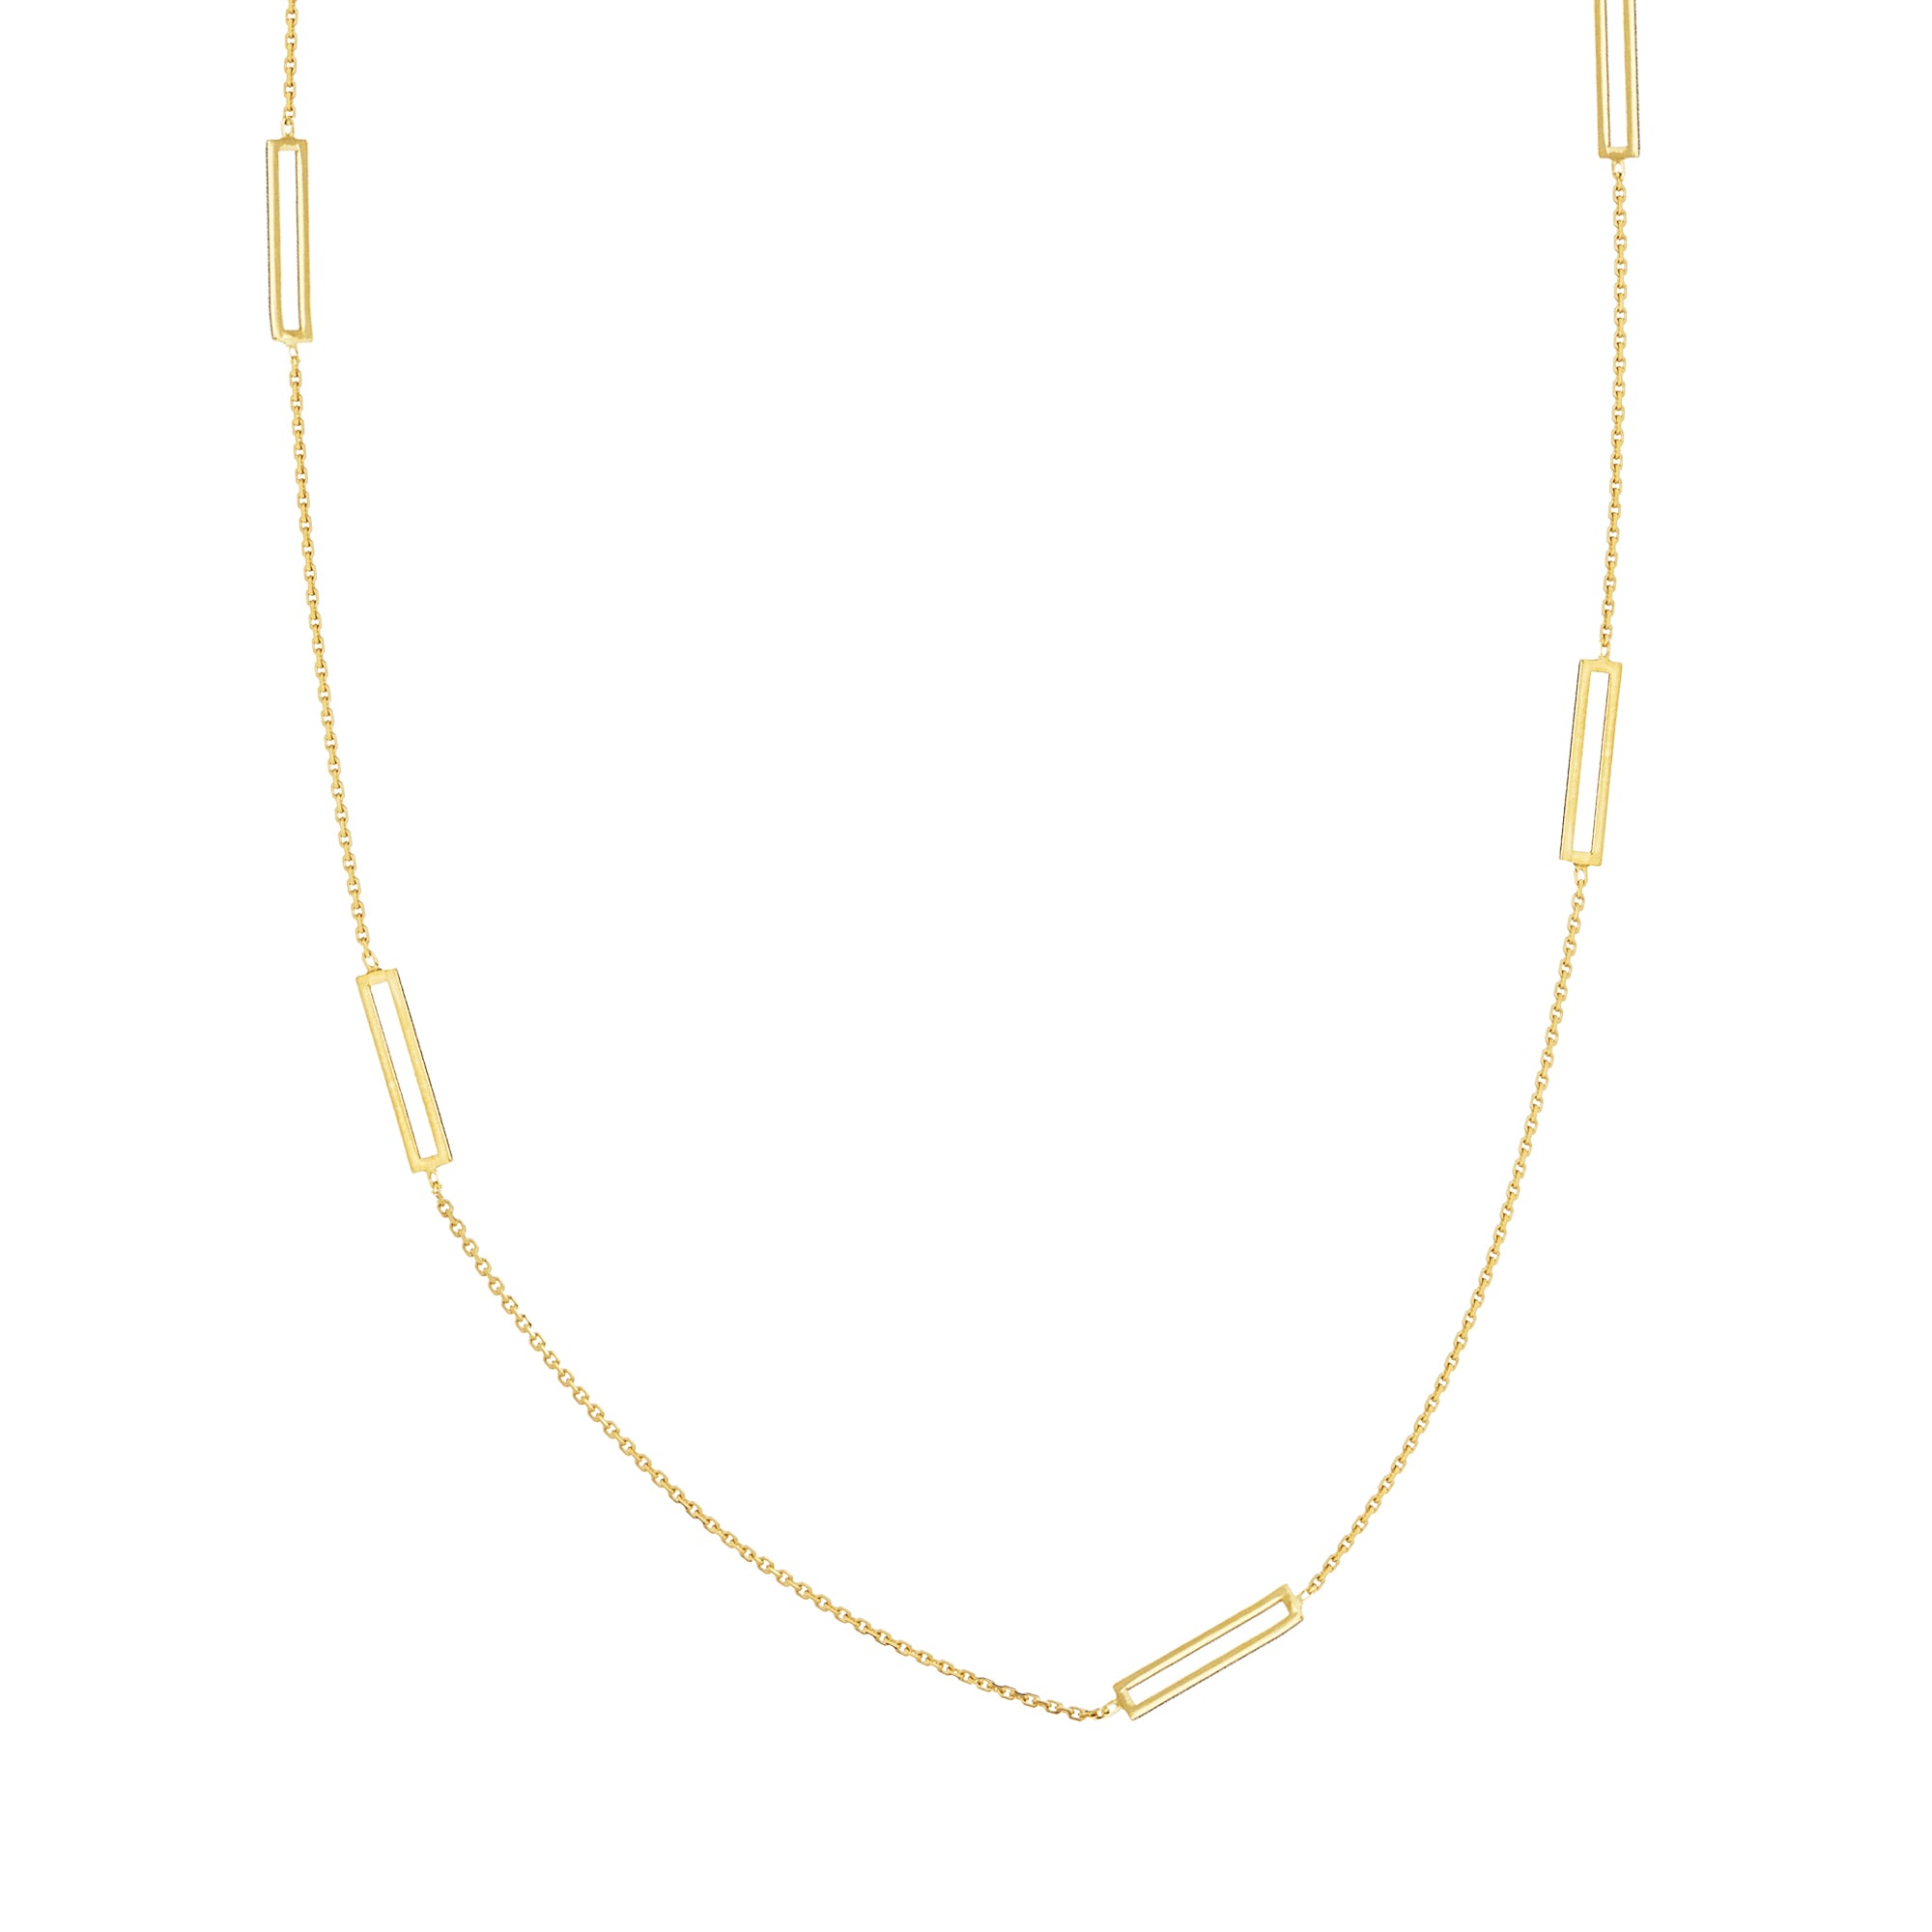 pav rock delicate necklace products pave n bette star rose